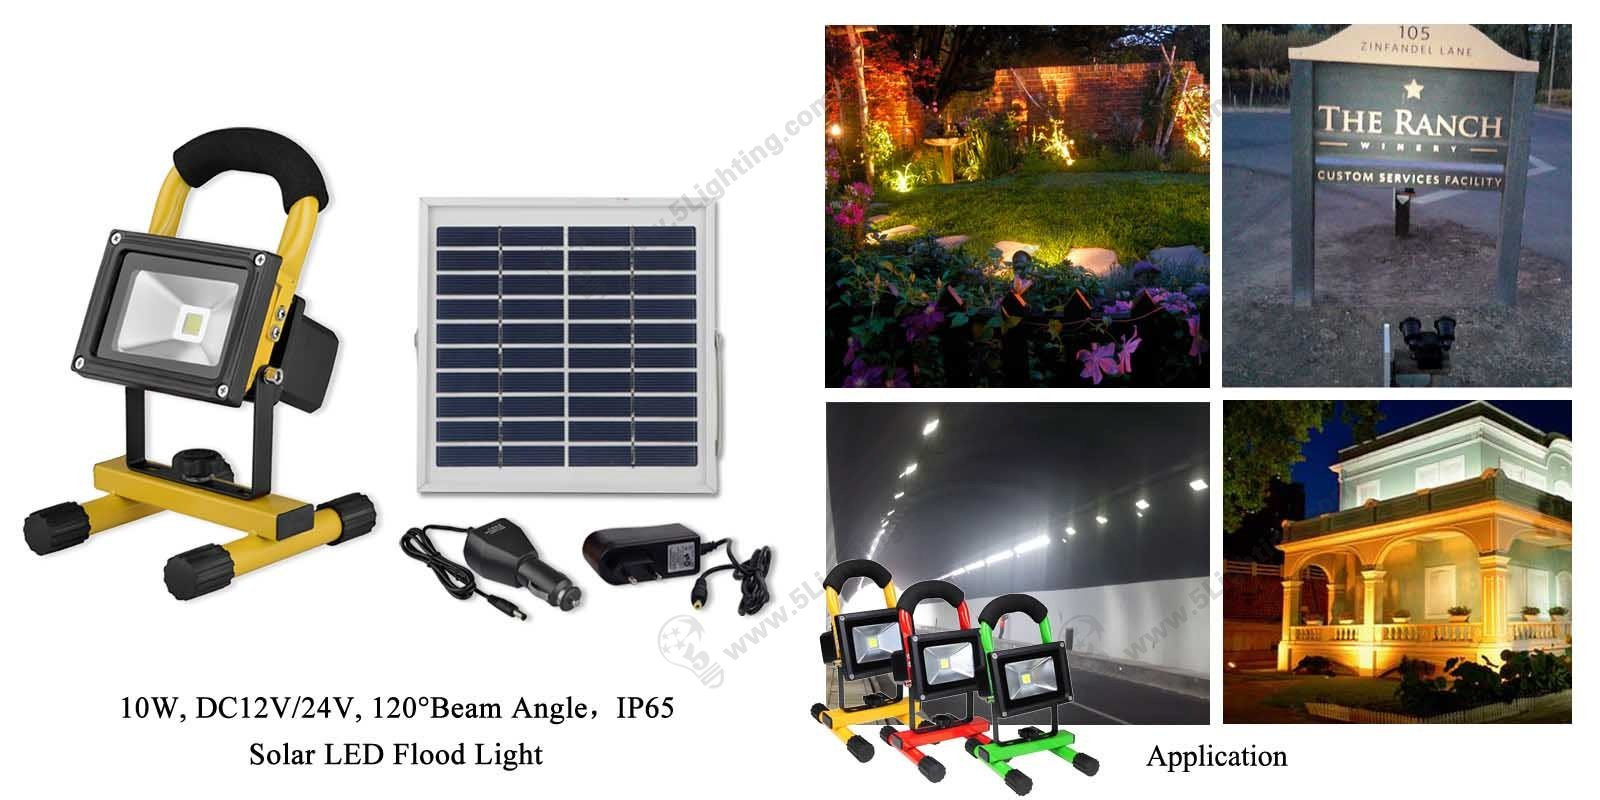 Solar LED Flood Light 10 watts outdoor lighting